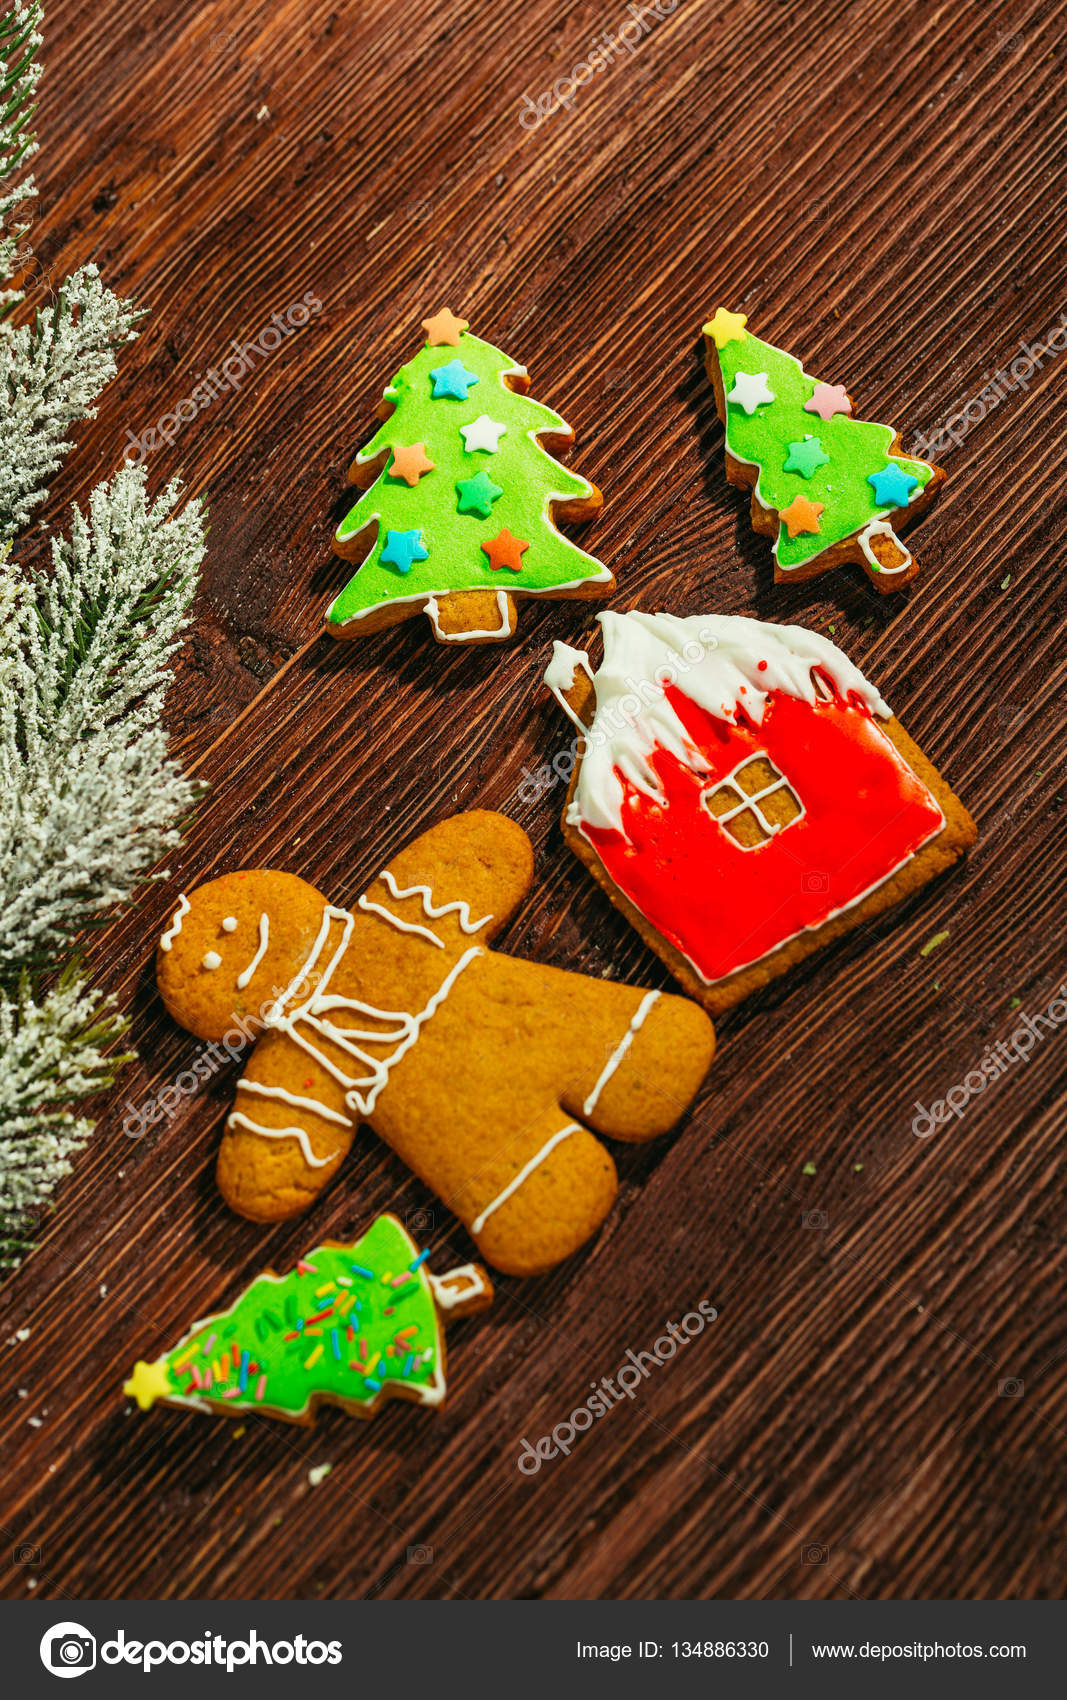 Painted Gingerbread House Christmas Tree And The Man On A Wooden